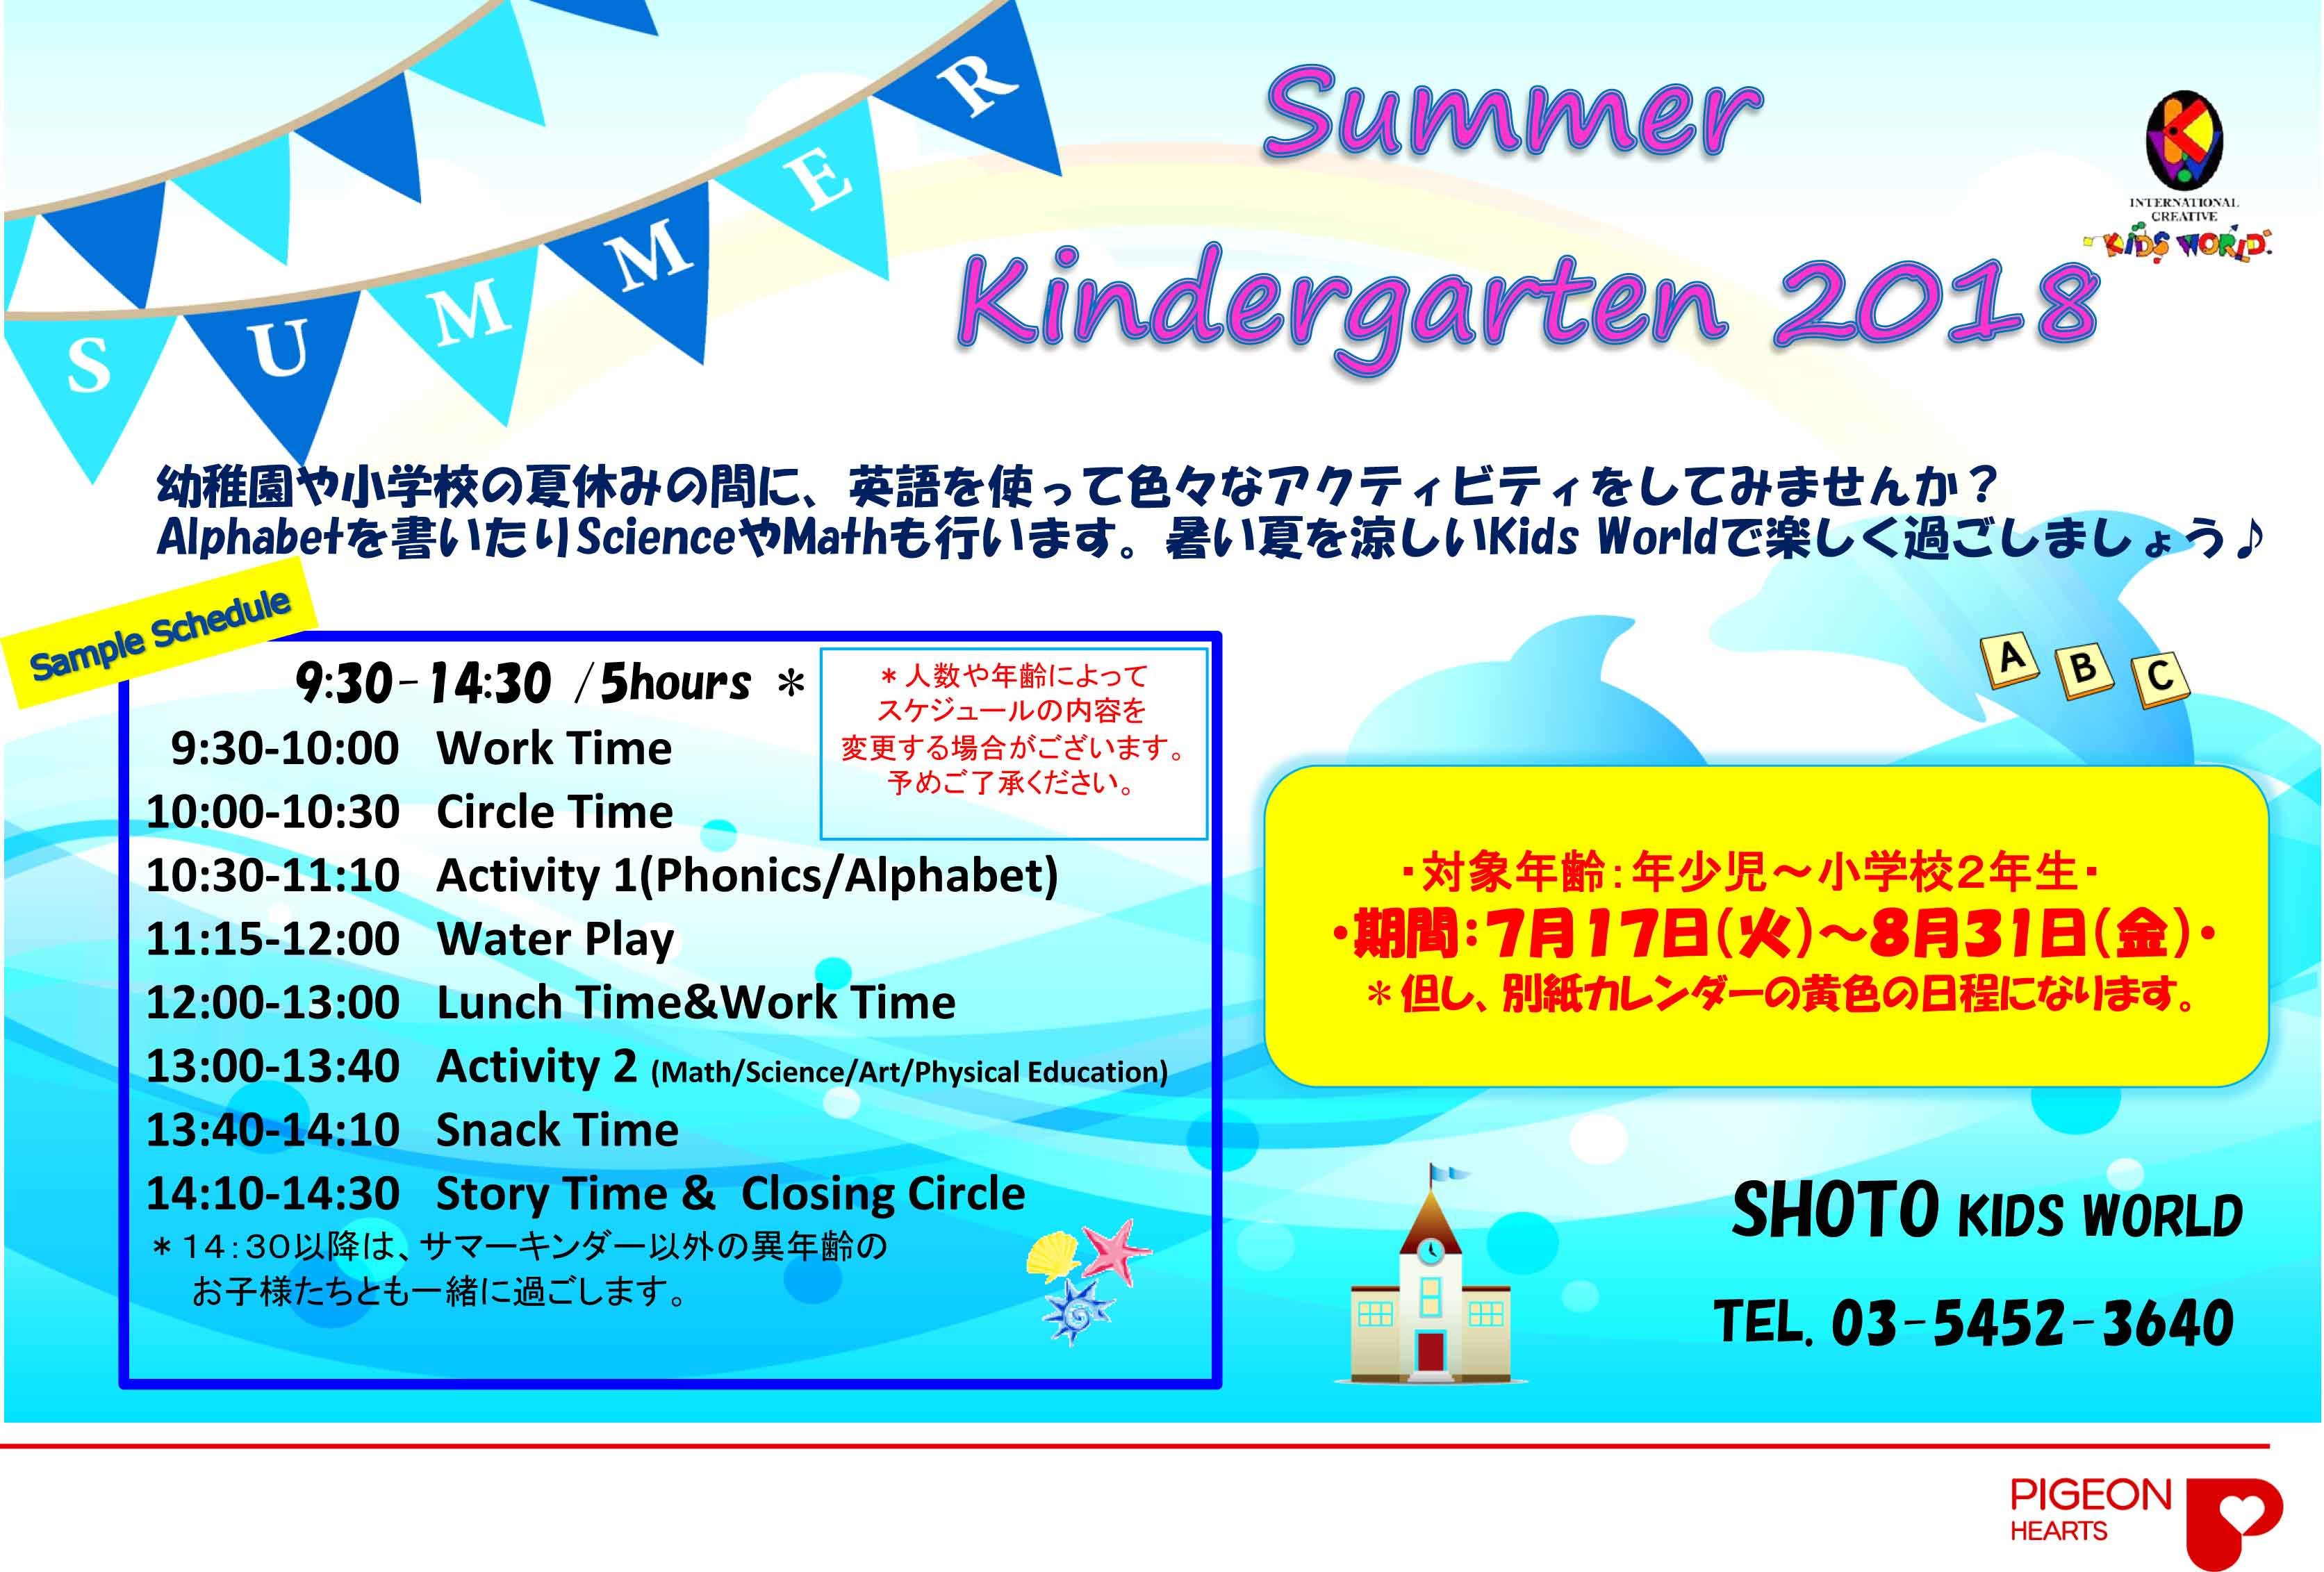 【松涛】Summer-Kinder2018 HP掲載用-1